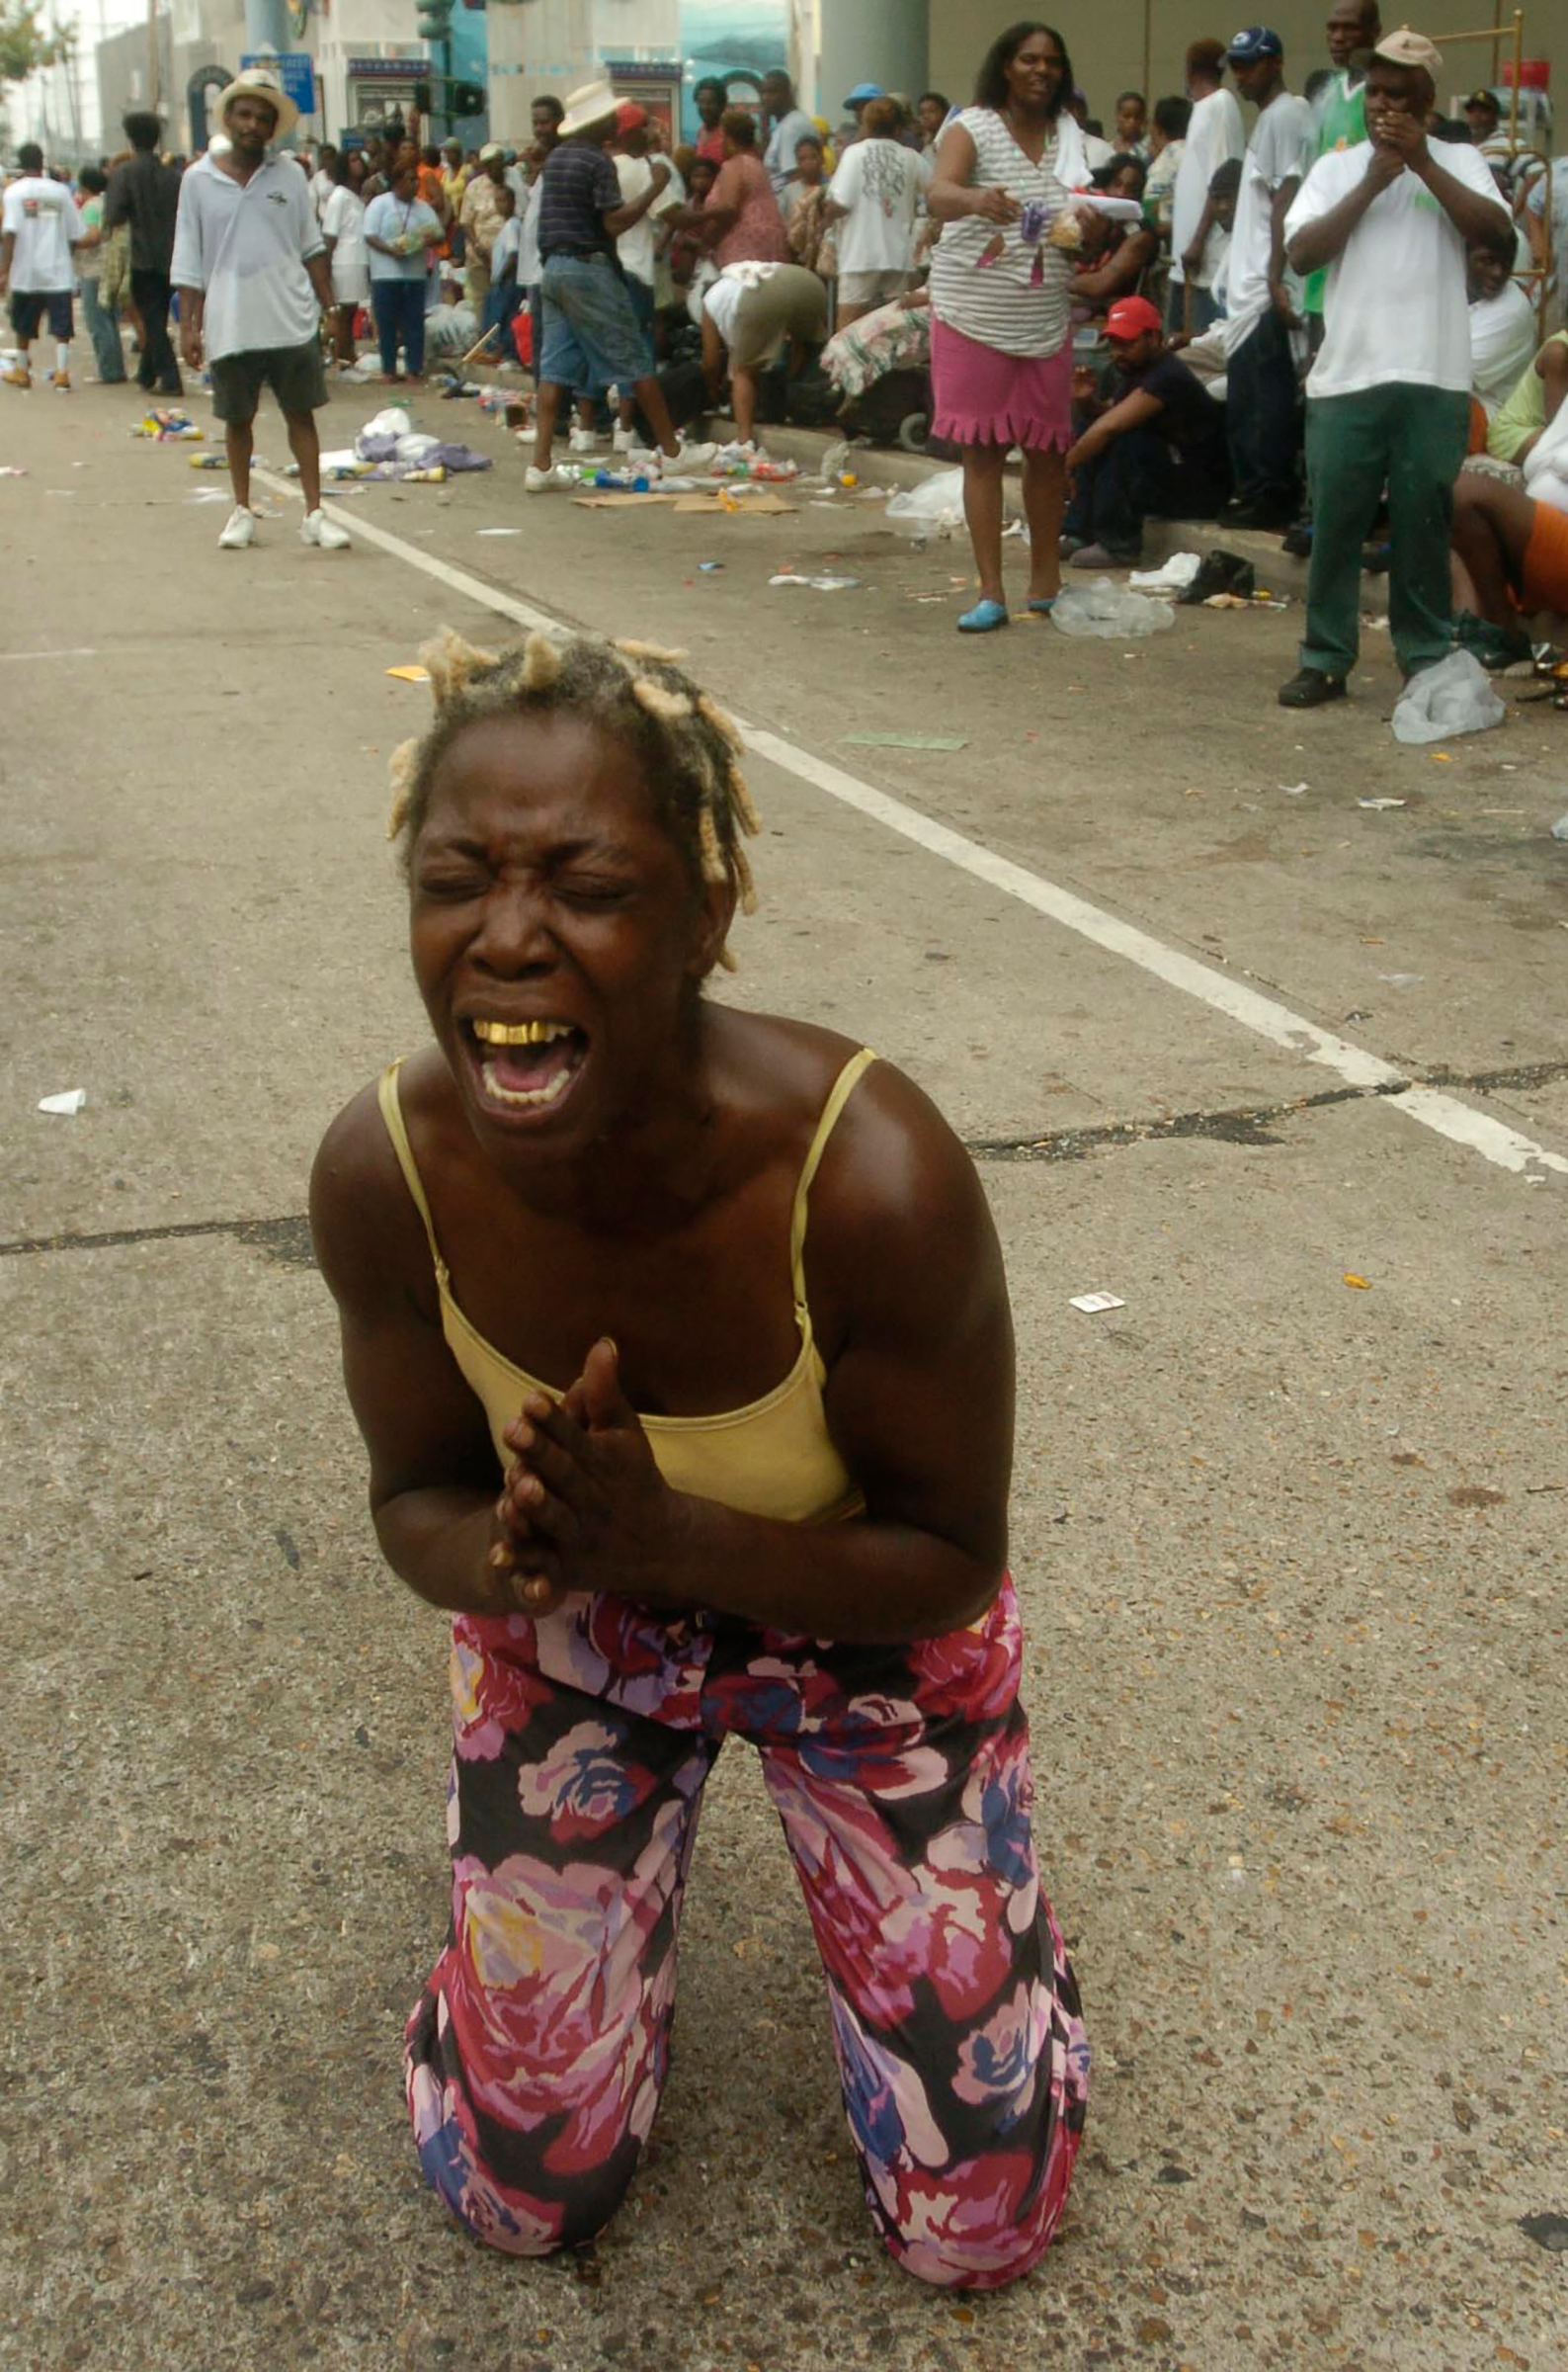 Angela Perkins drops to her knees asking for help among thousands of people gathered at the New Orleans Convention Center waiting in the aftermath of Hurricane Katrina on Sept. 1, 2005